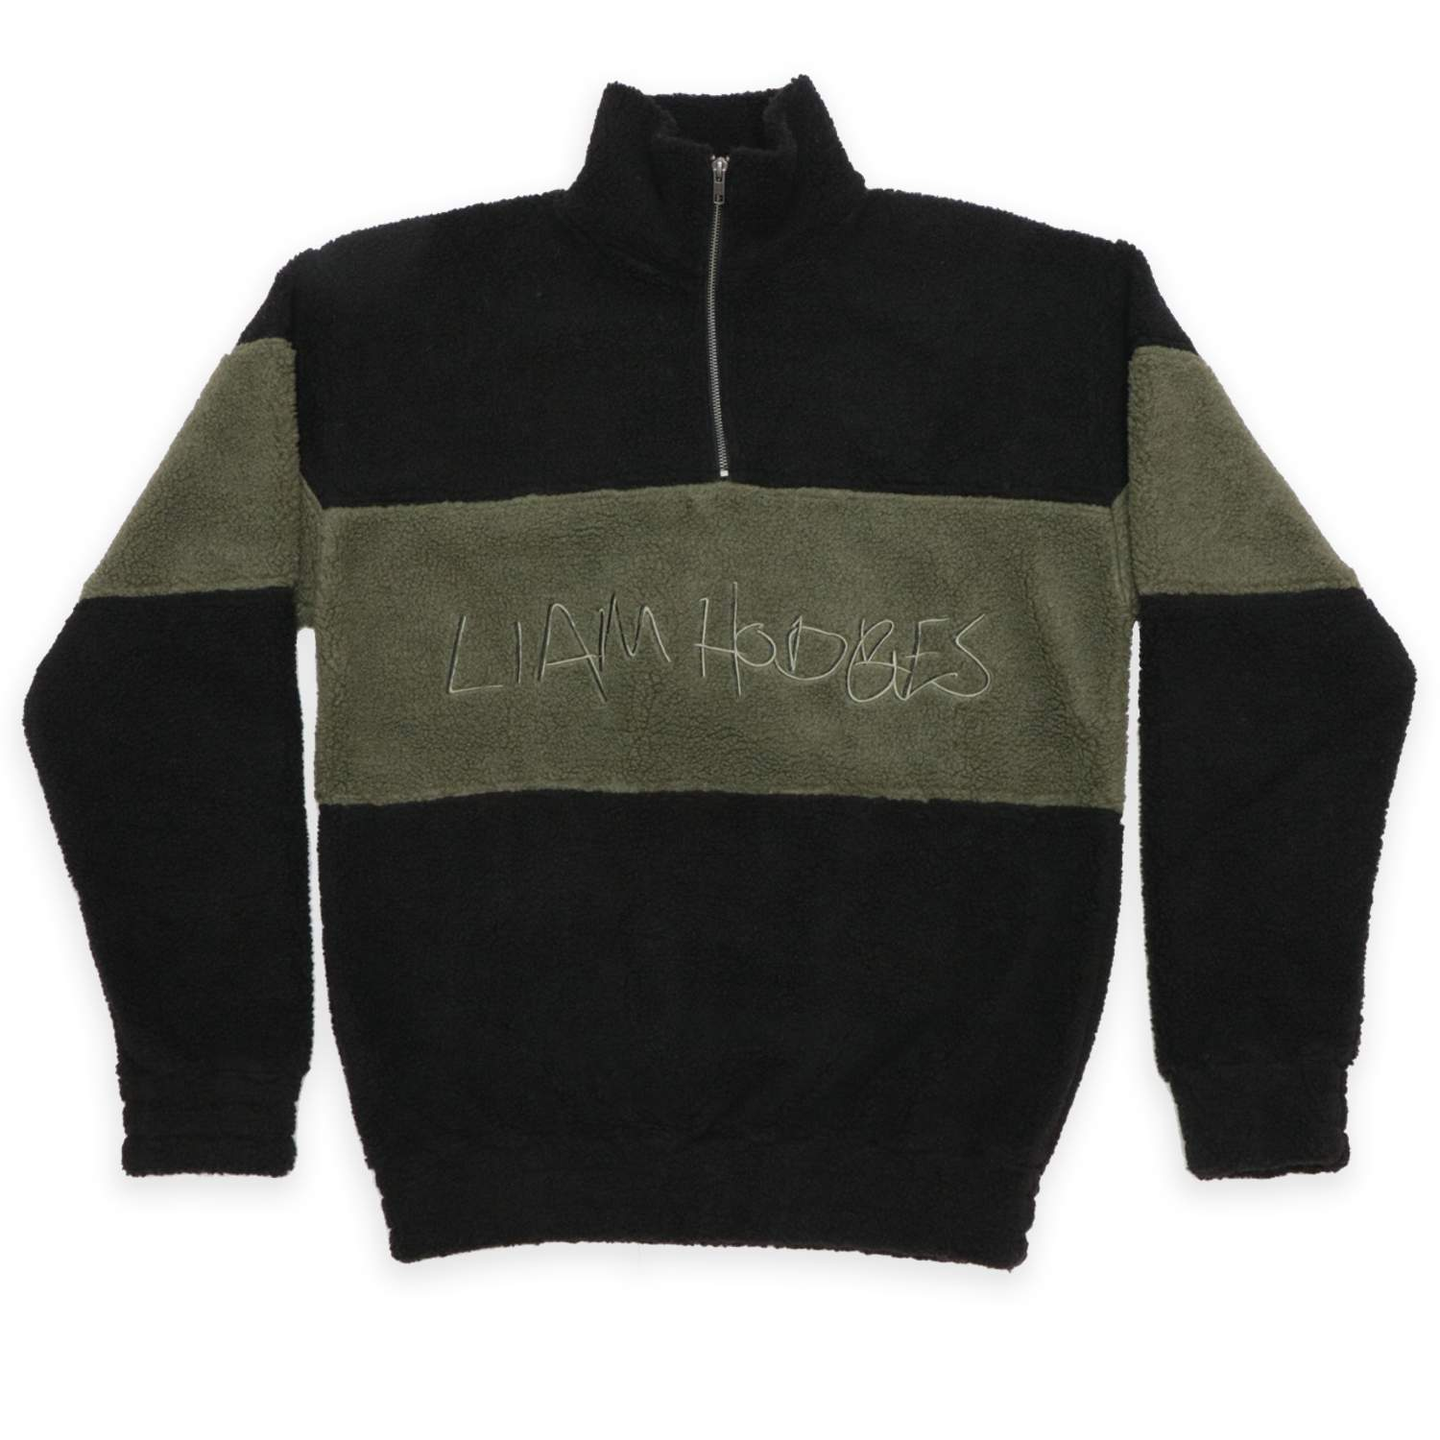 Black Hand Written Embroidered Fleece Sweatshirt